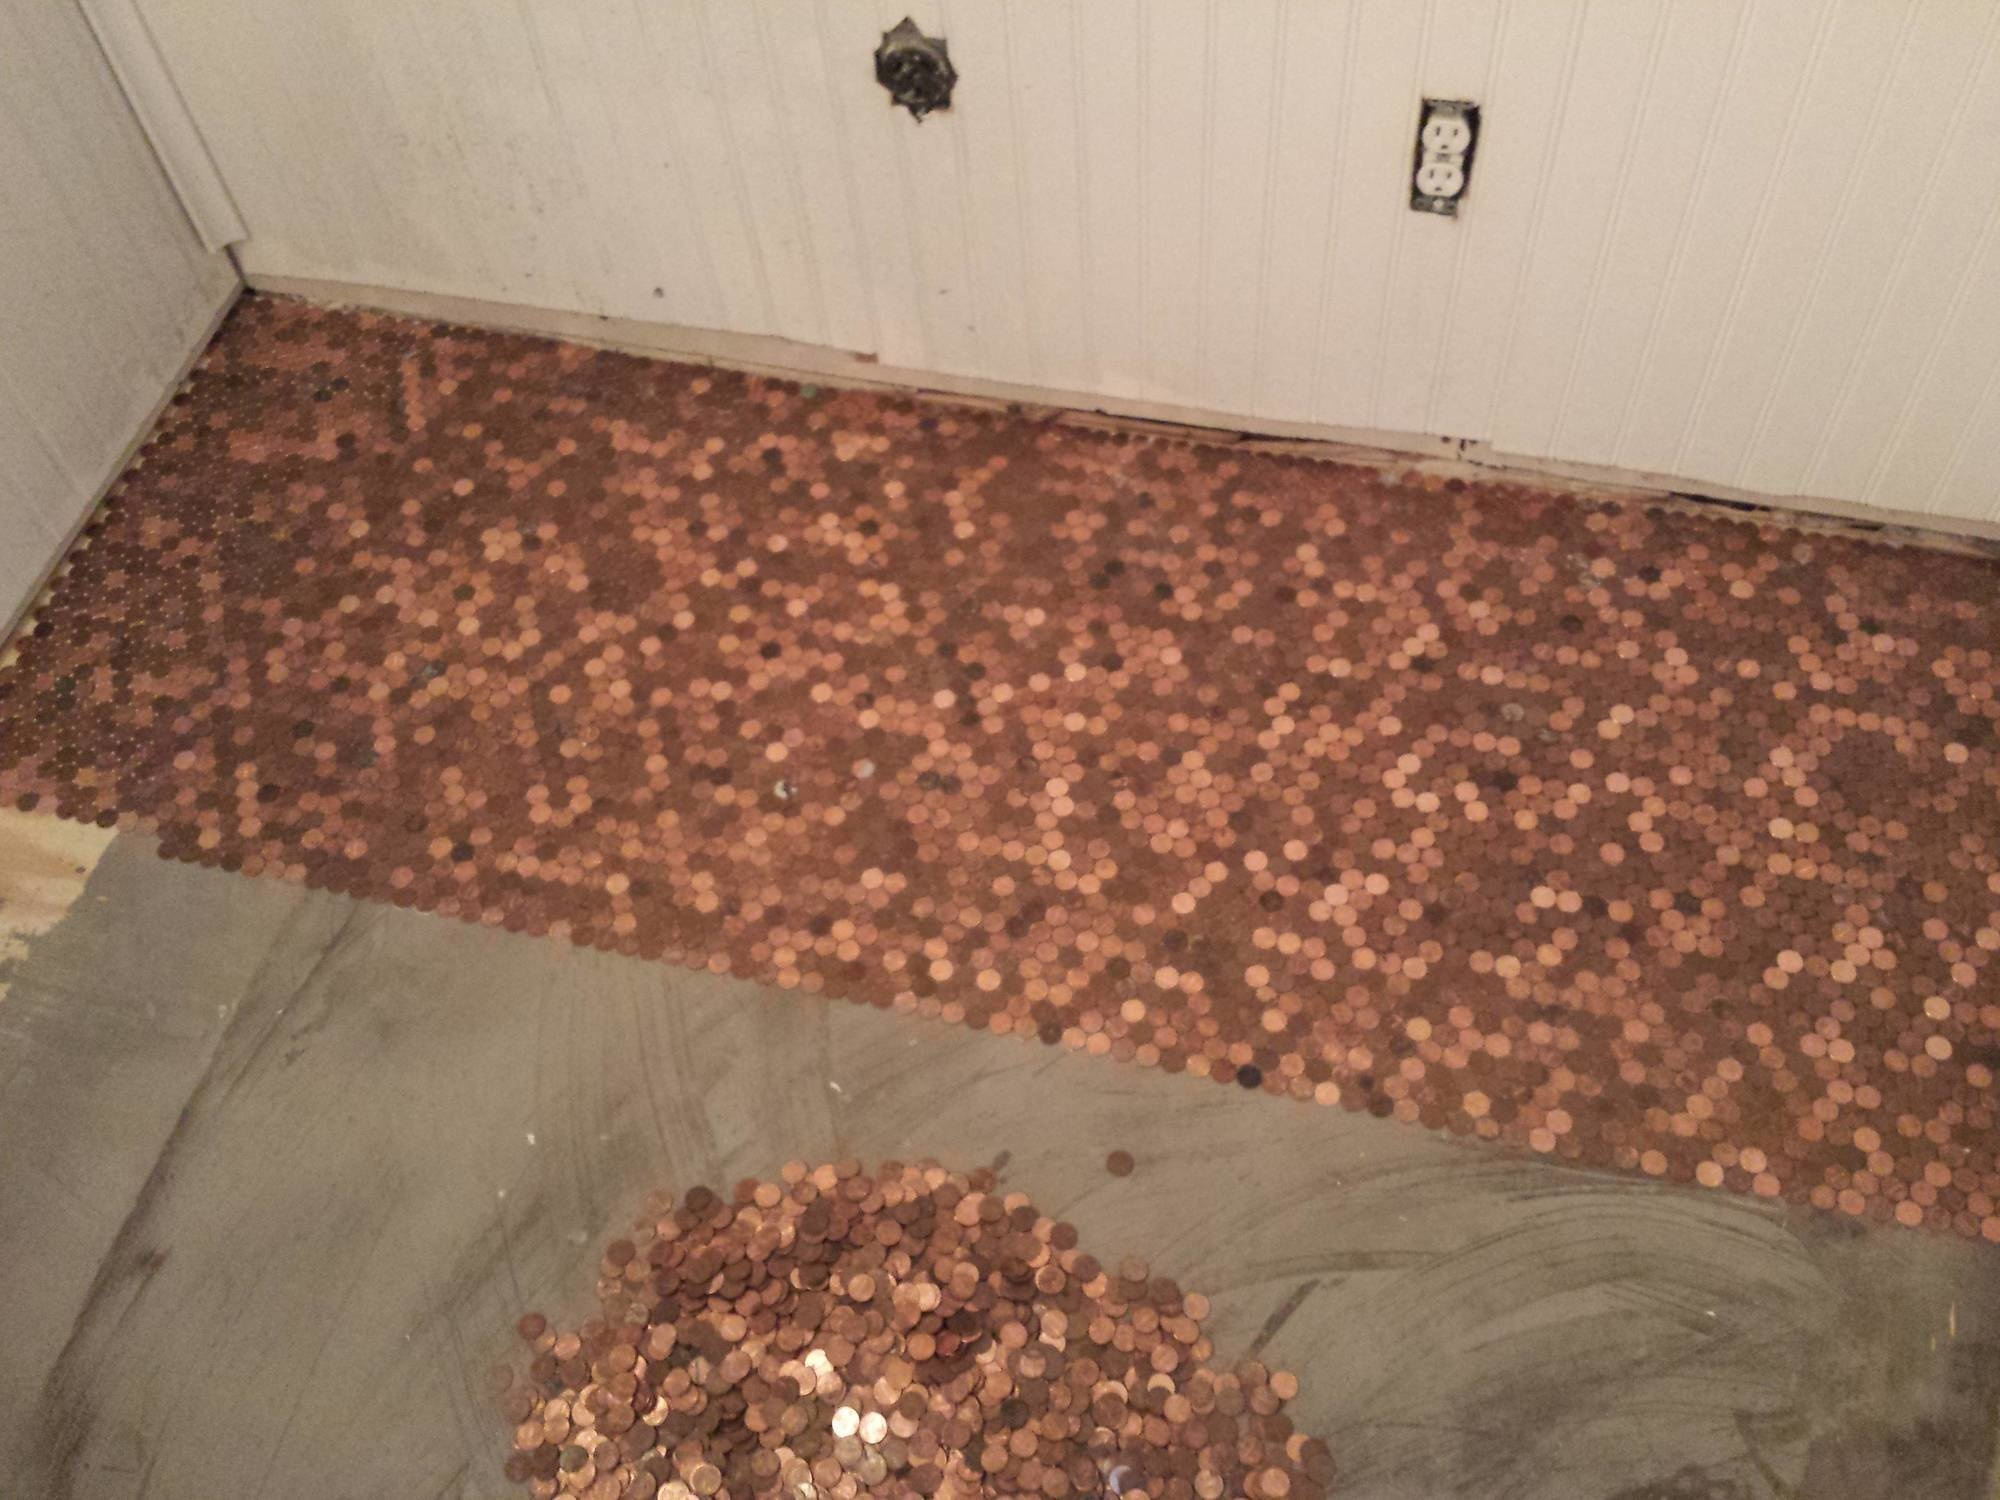 Badezimmer Lampe Glitzer He Made An Awesome Penny Floor Out Of Old Pennies You Can